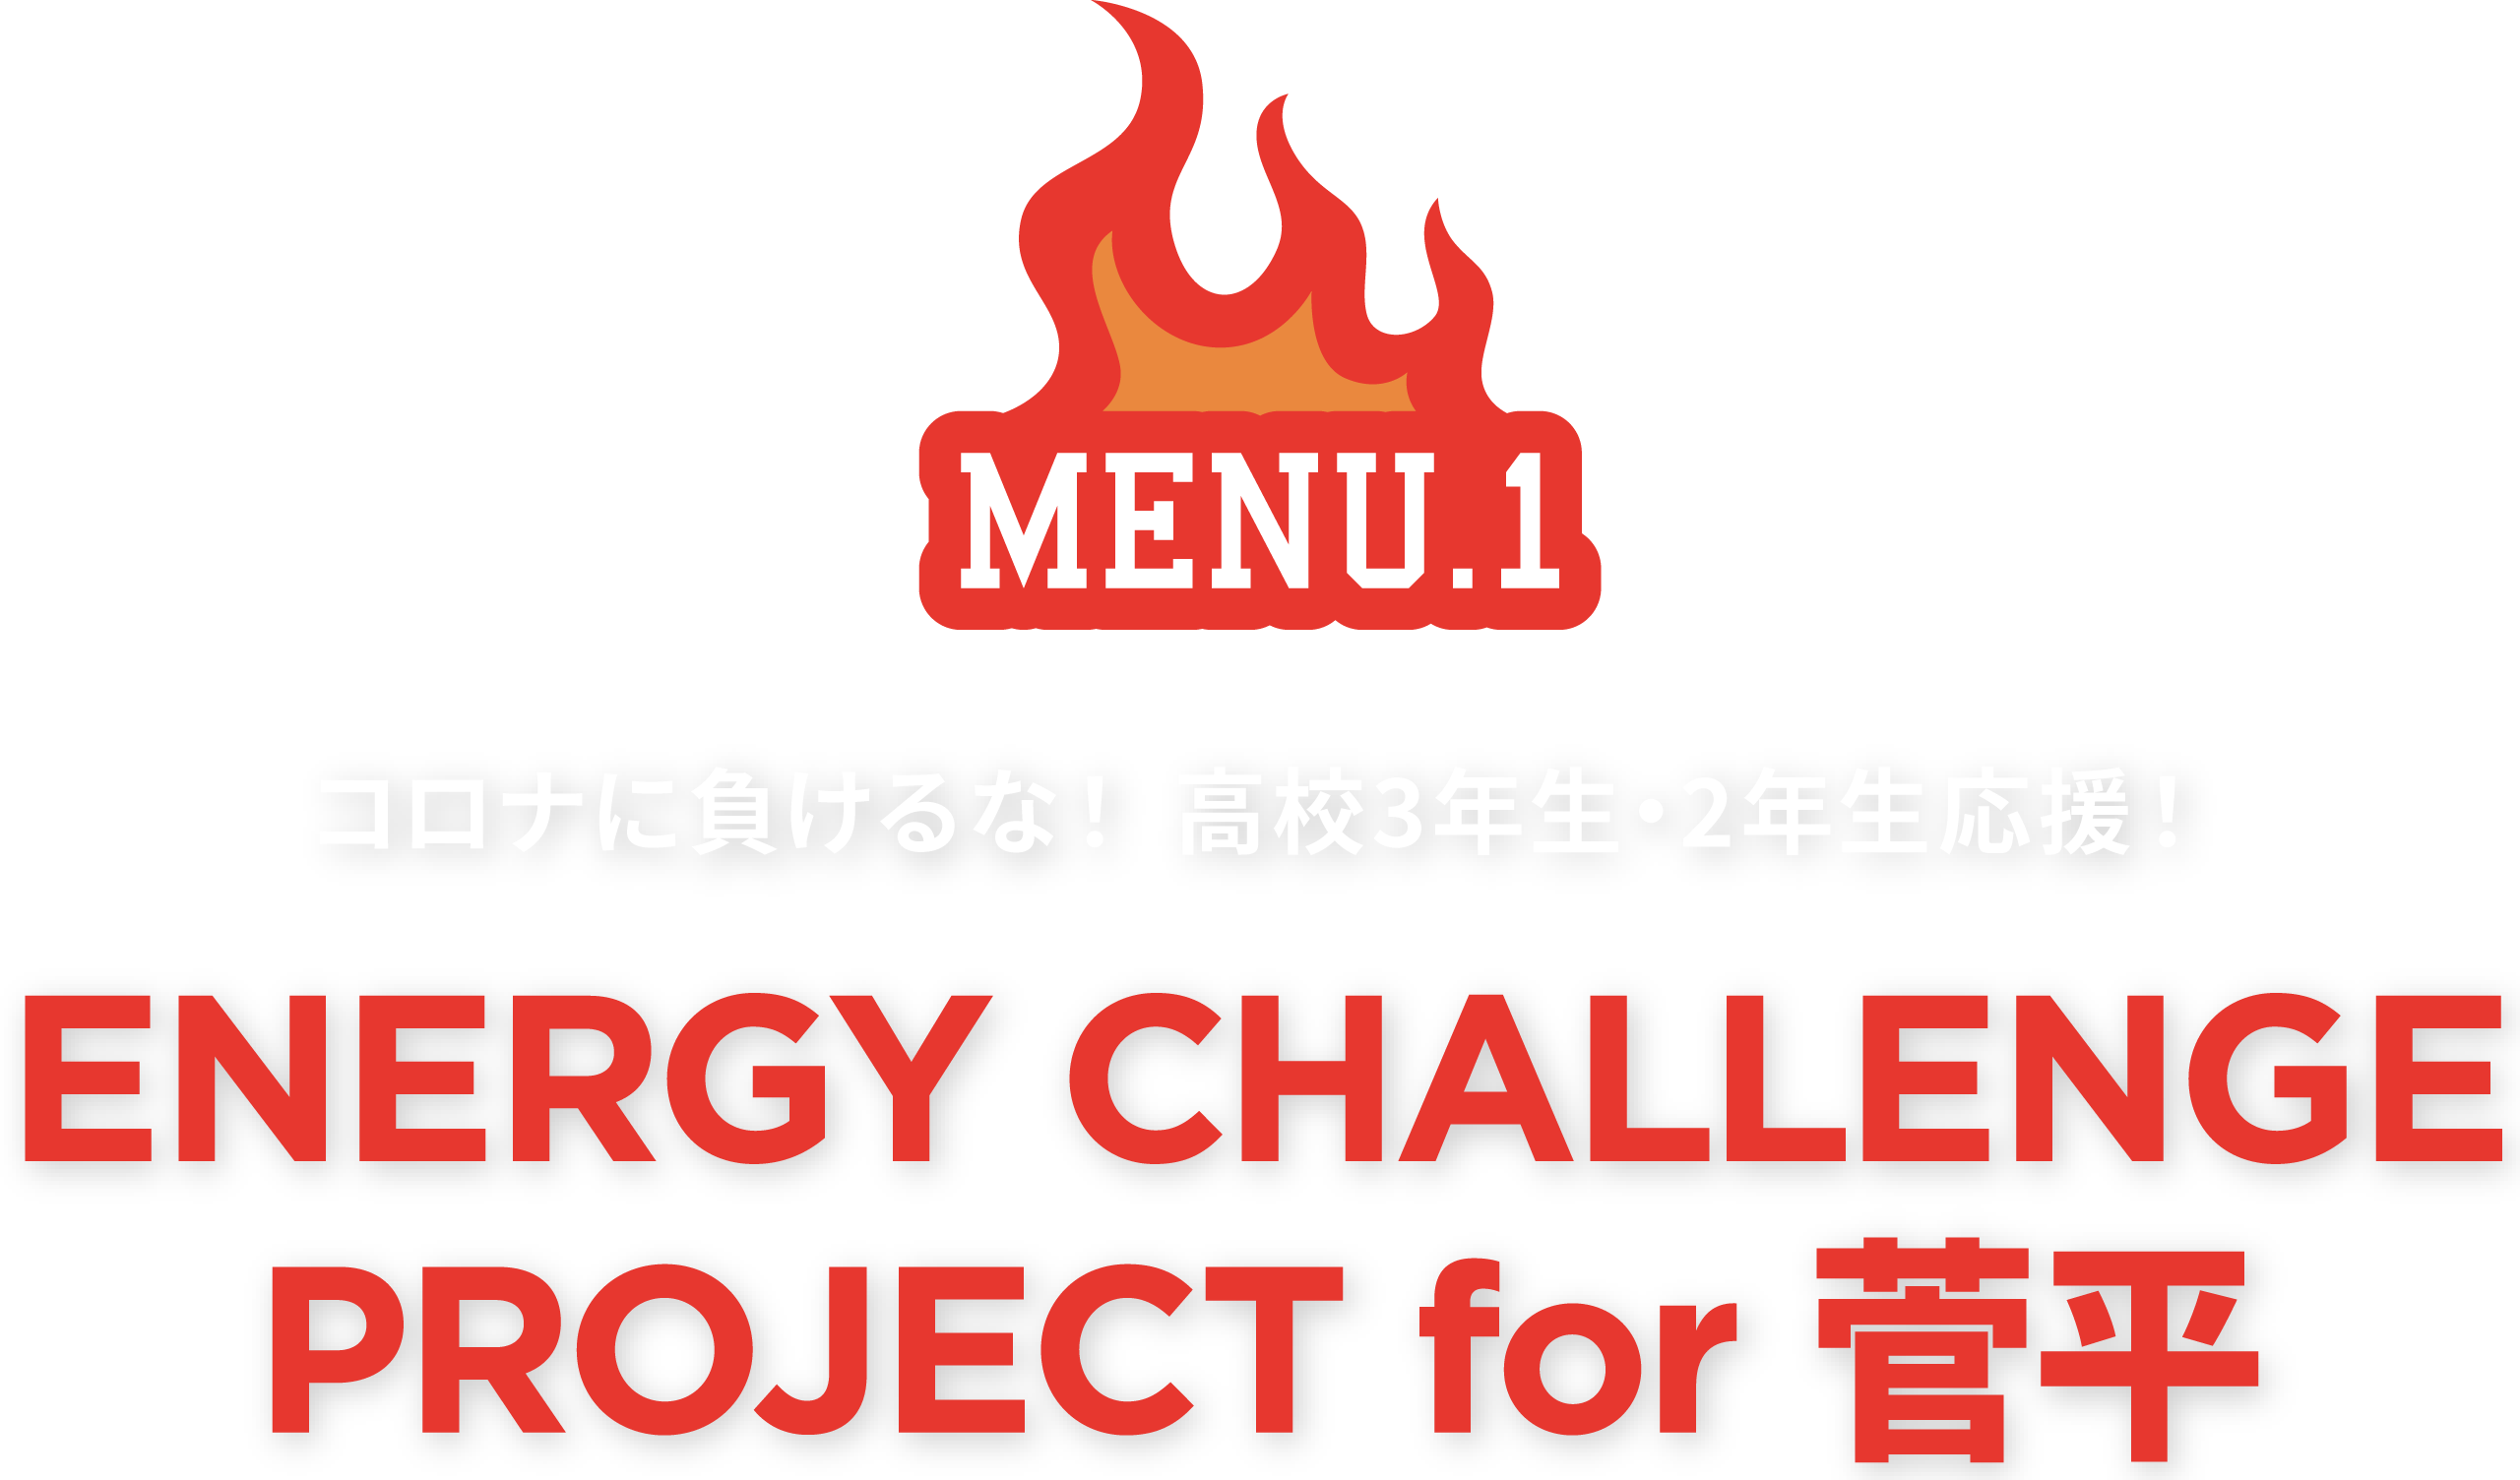 ENERGY CHALLENGE PROJECT for 菅平